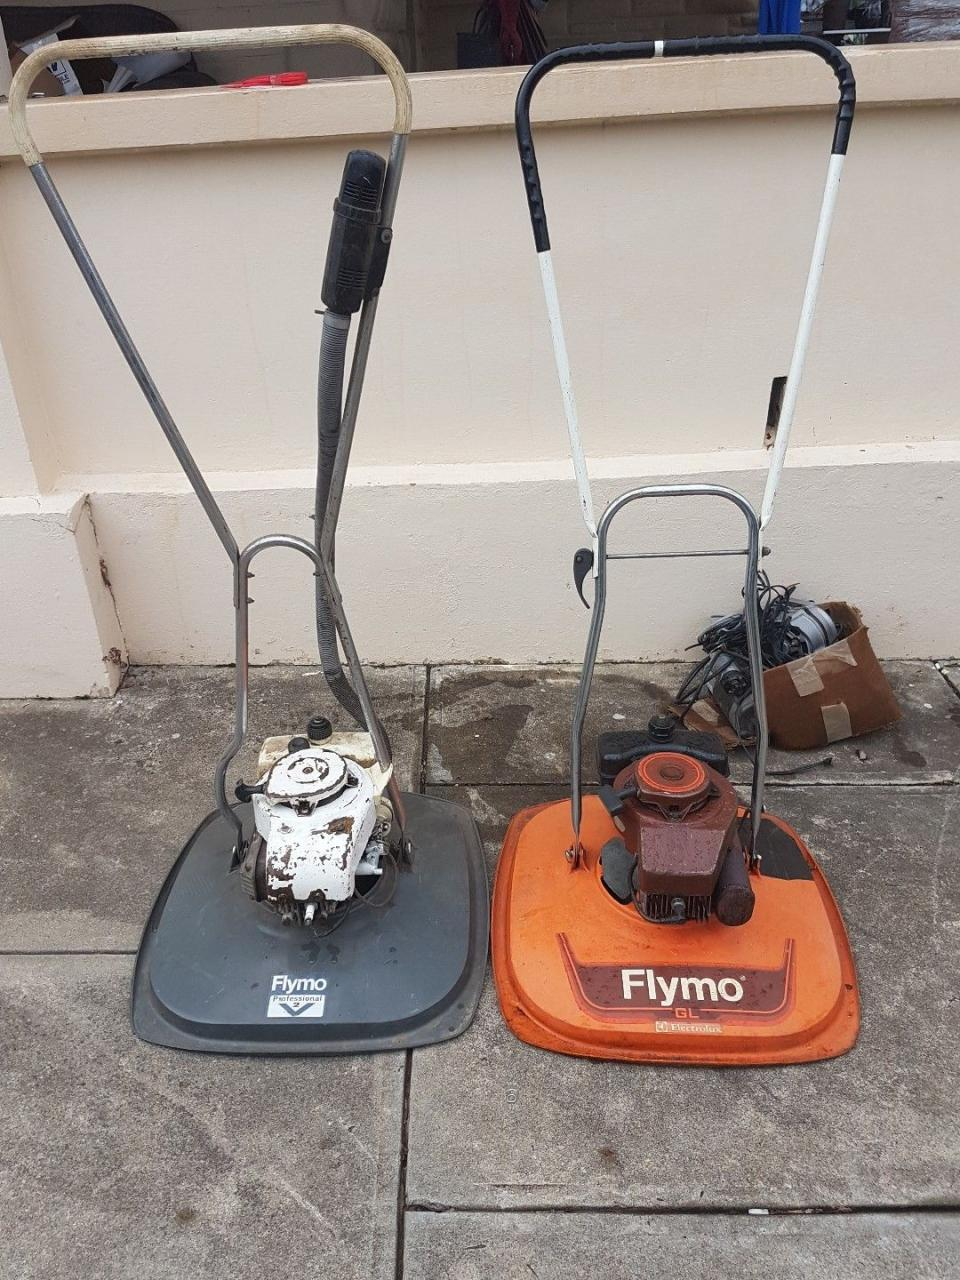 flymo petrol hover mower a first for me outdoorking. Black Bedroom Furniture Sets. Home Design Ideas